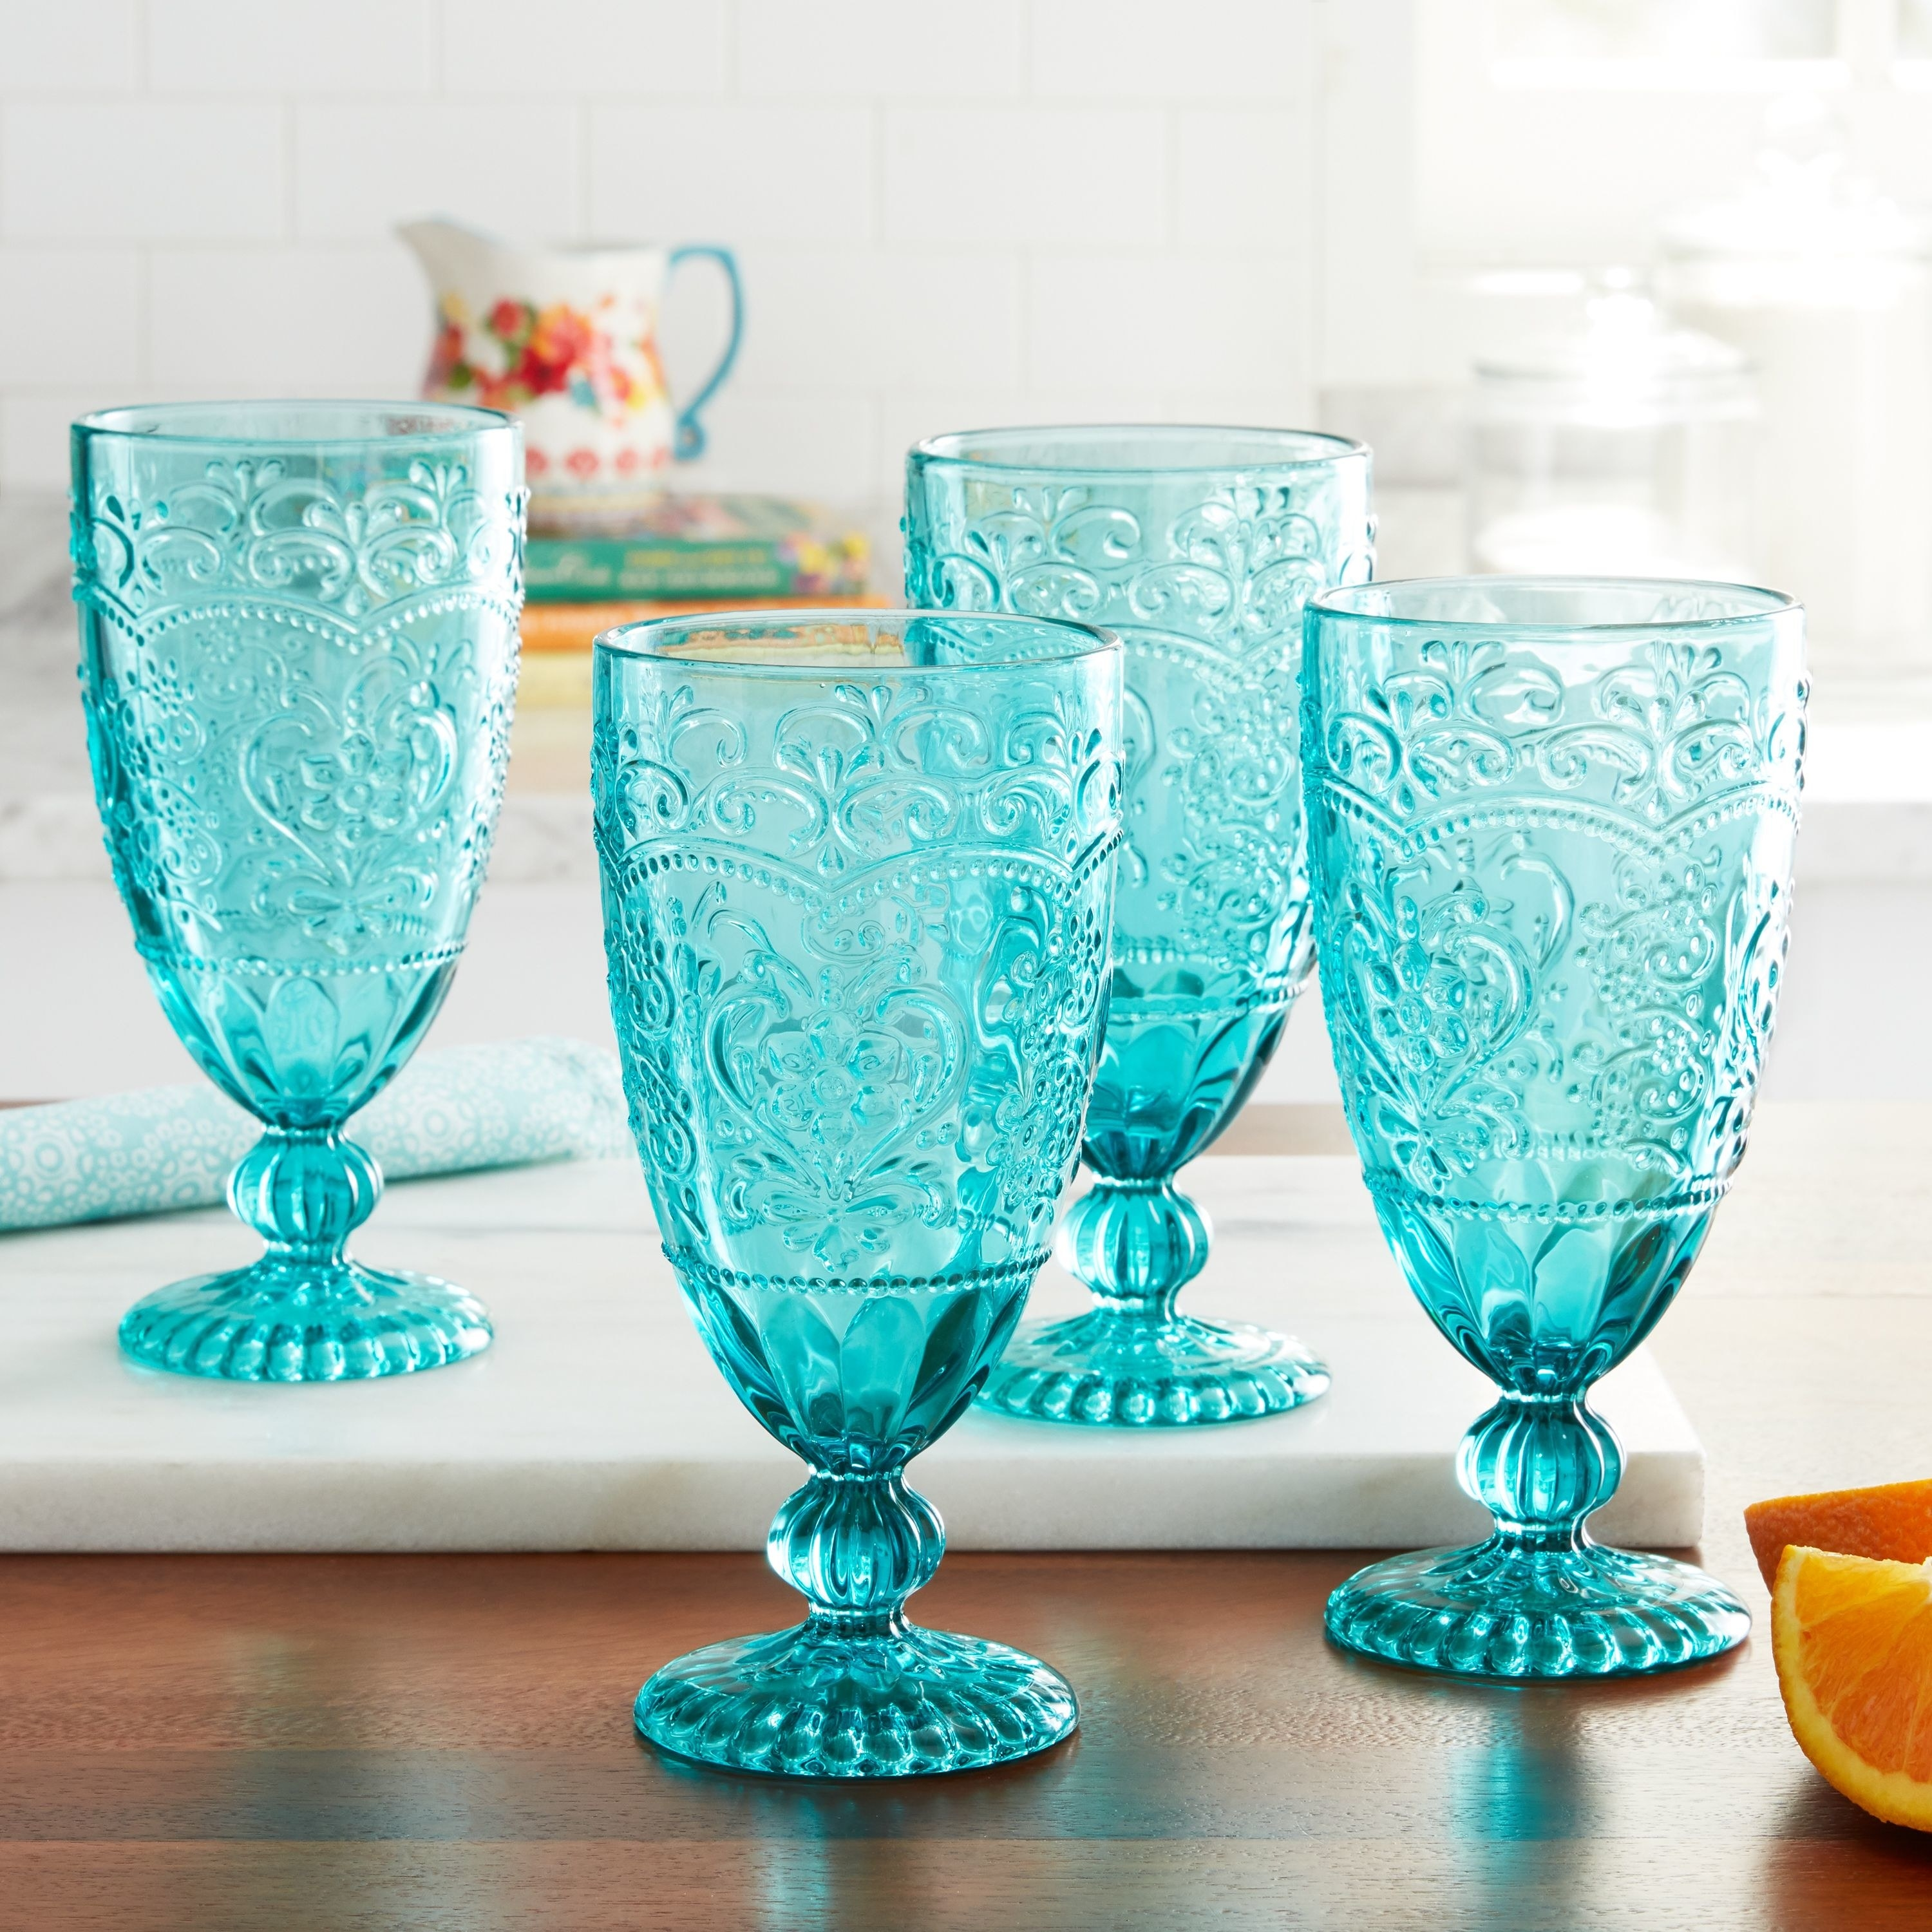 blue glasses with an embezzled design on them